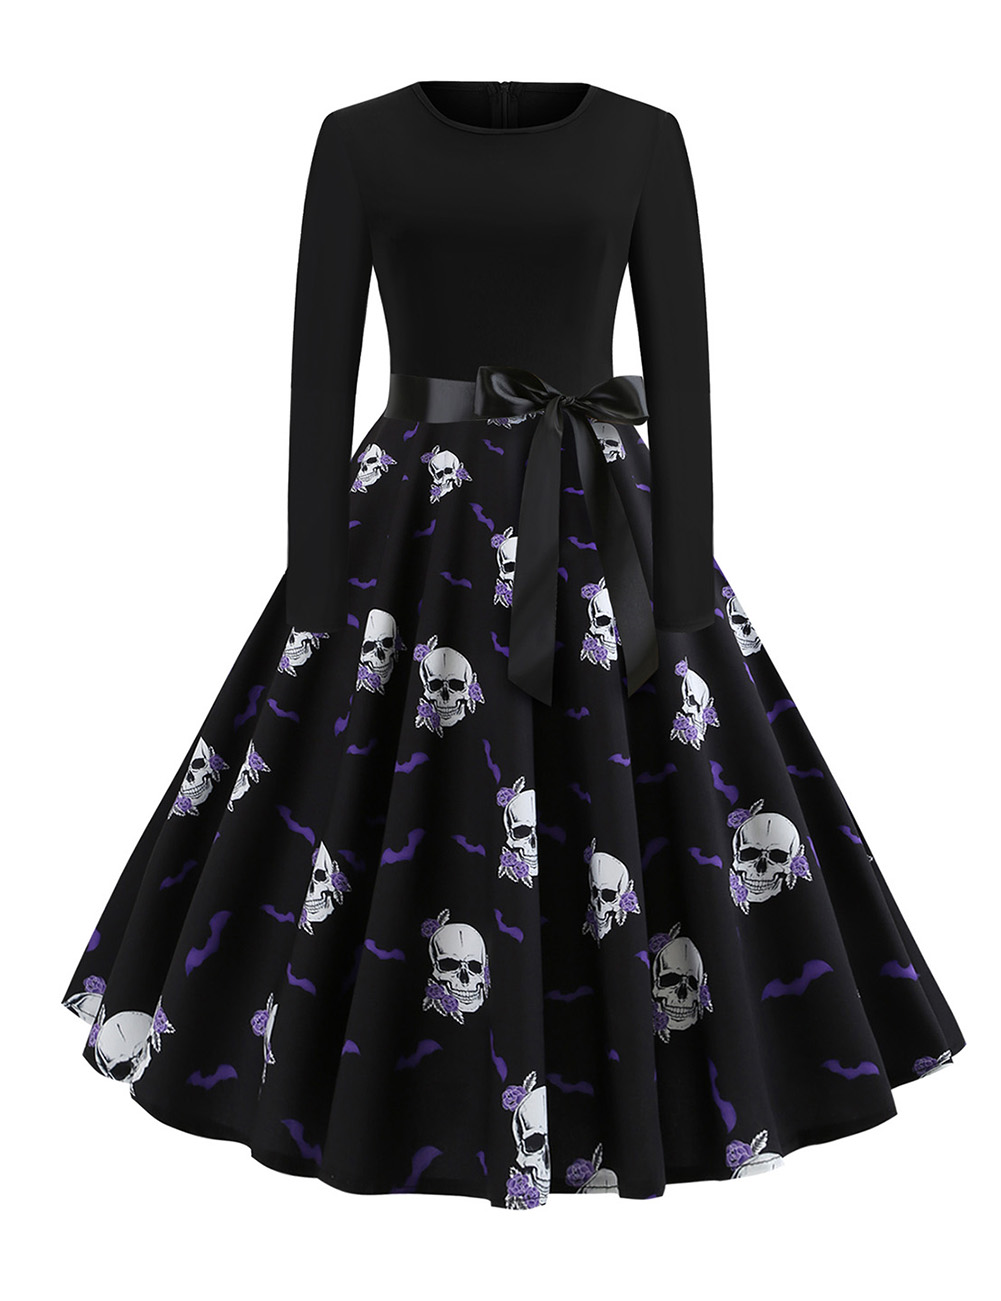 //cdn.affectcloud.com/lover-beauty/upload/imgs/Dresses/Skater_Dress/VZ191183-M02/VZ191183-M02-201908305d68fadd83206.jpg